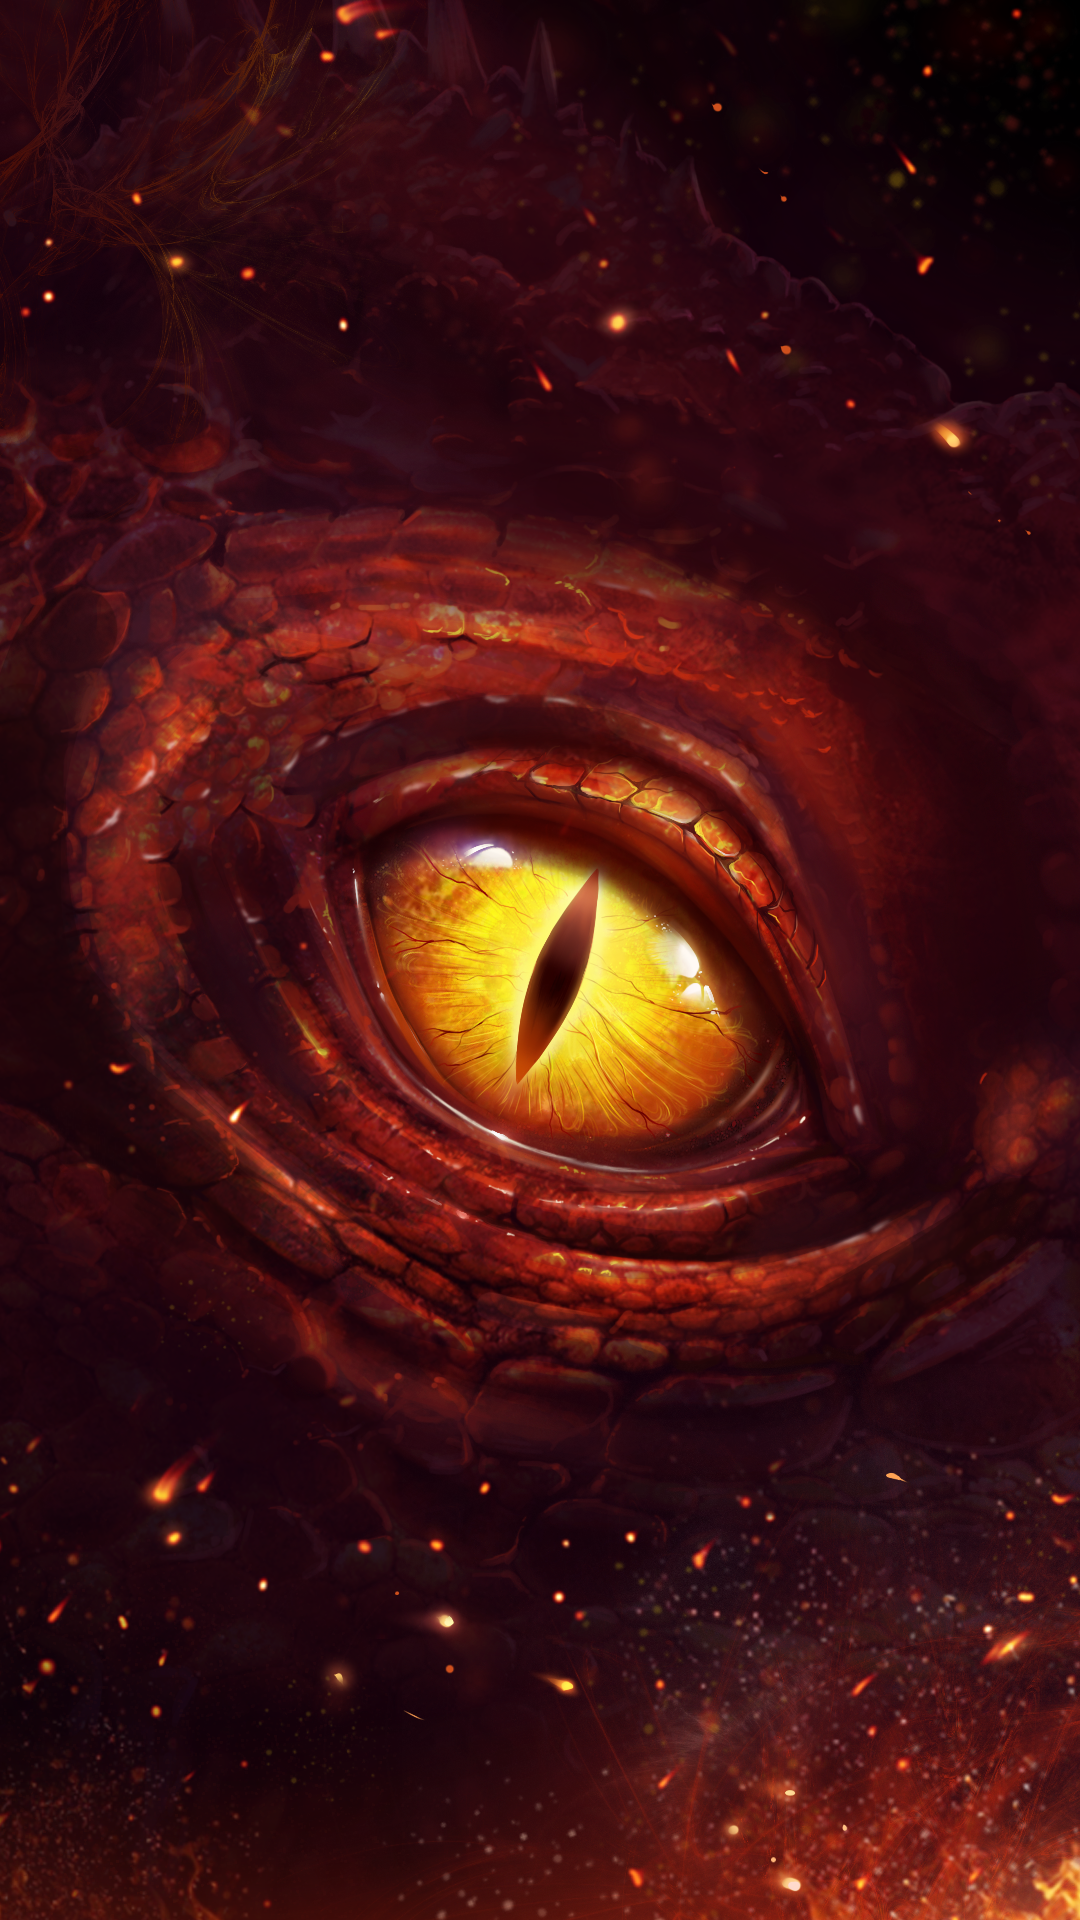 Horrible dragon eye wallpaper!  Eyes wallpaper, Dragon eye, Live